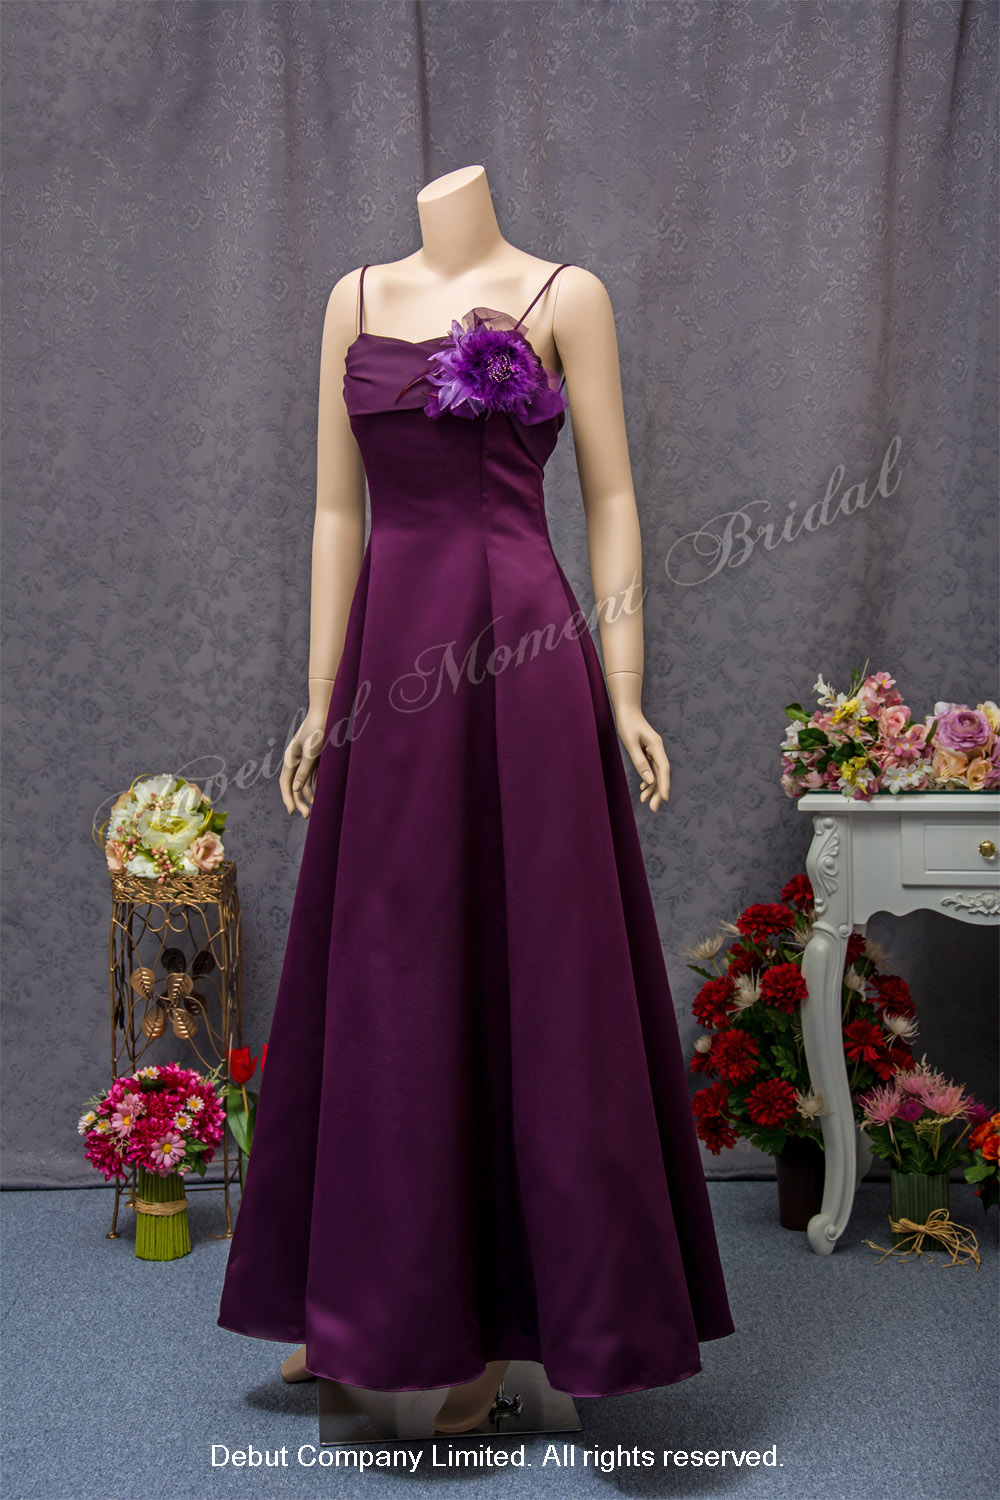 Purple Maid-of-honour A-line Party Dress with flower corsage. 紫色襟花佩配, 紫色伴娘晚裝裙